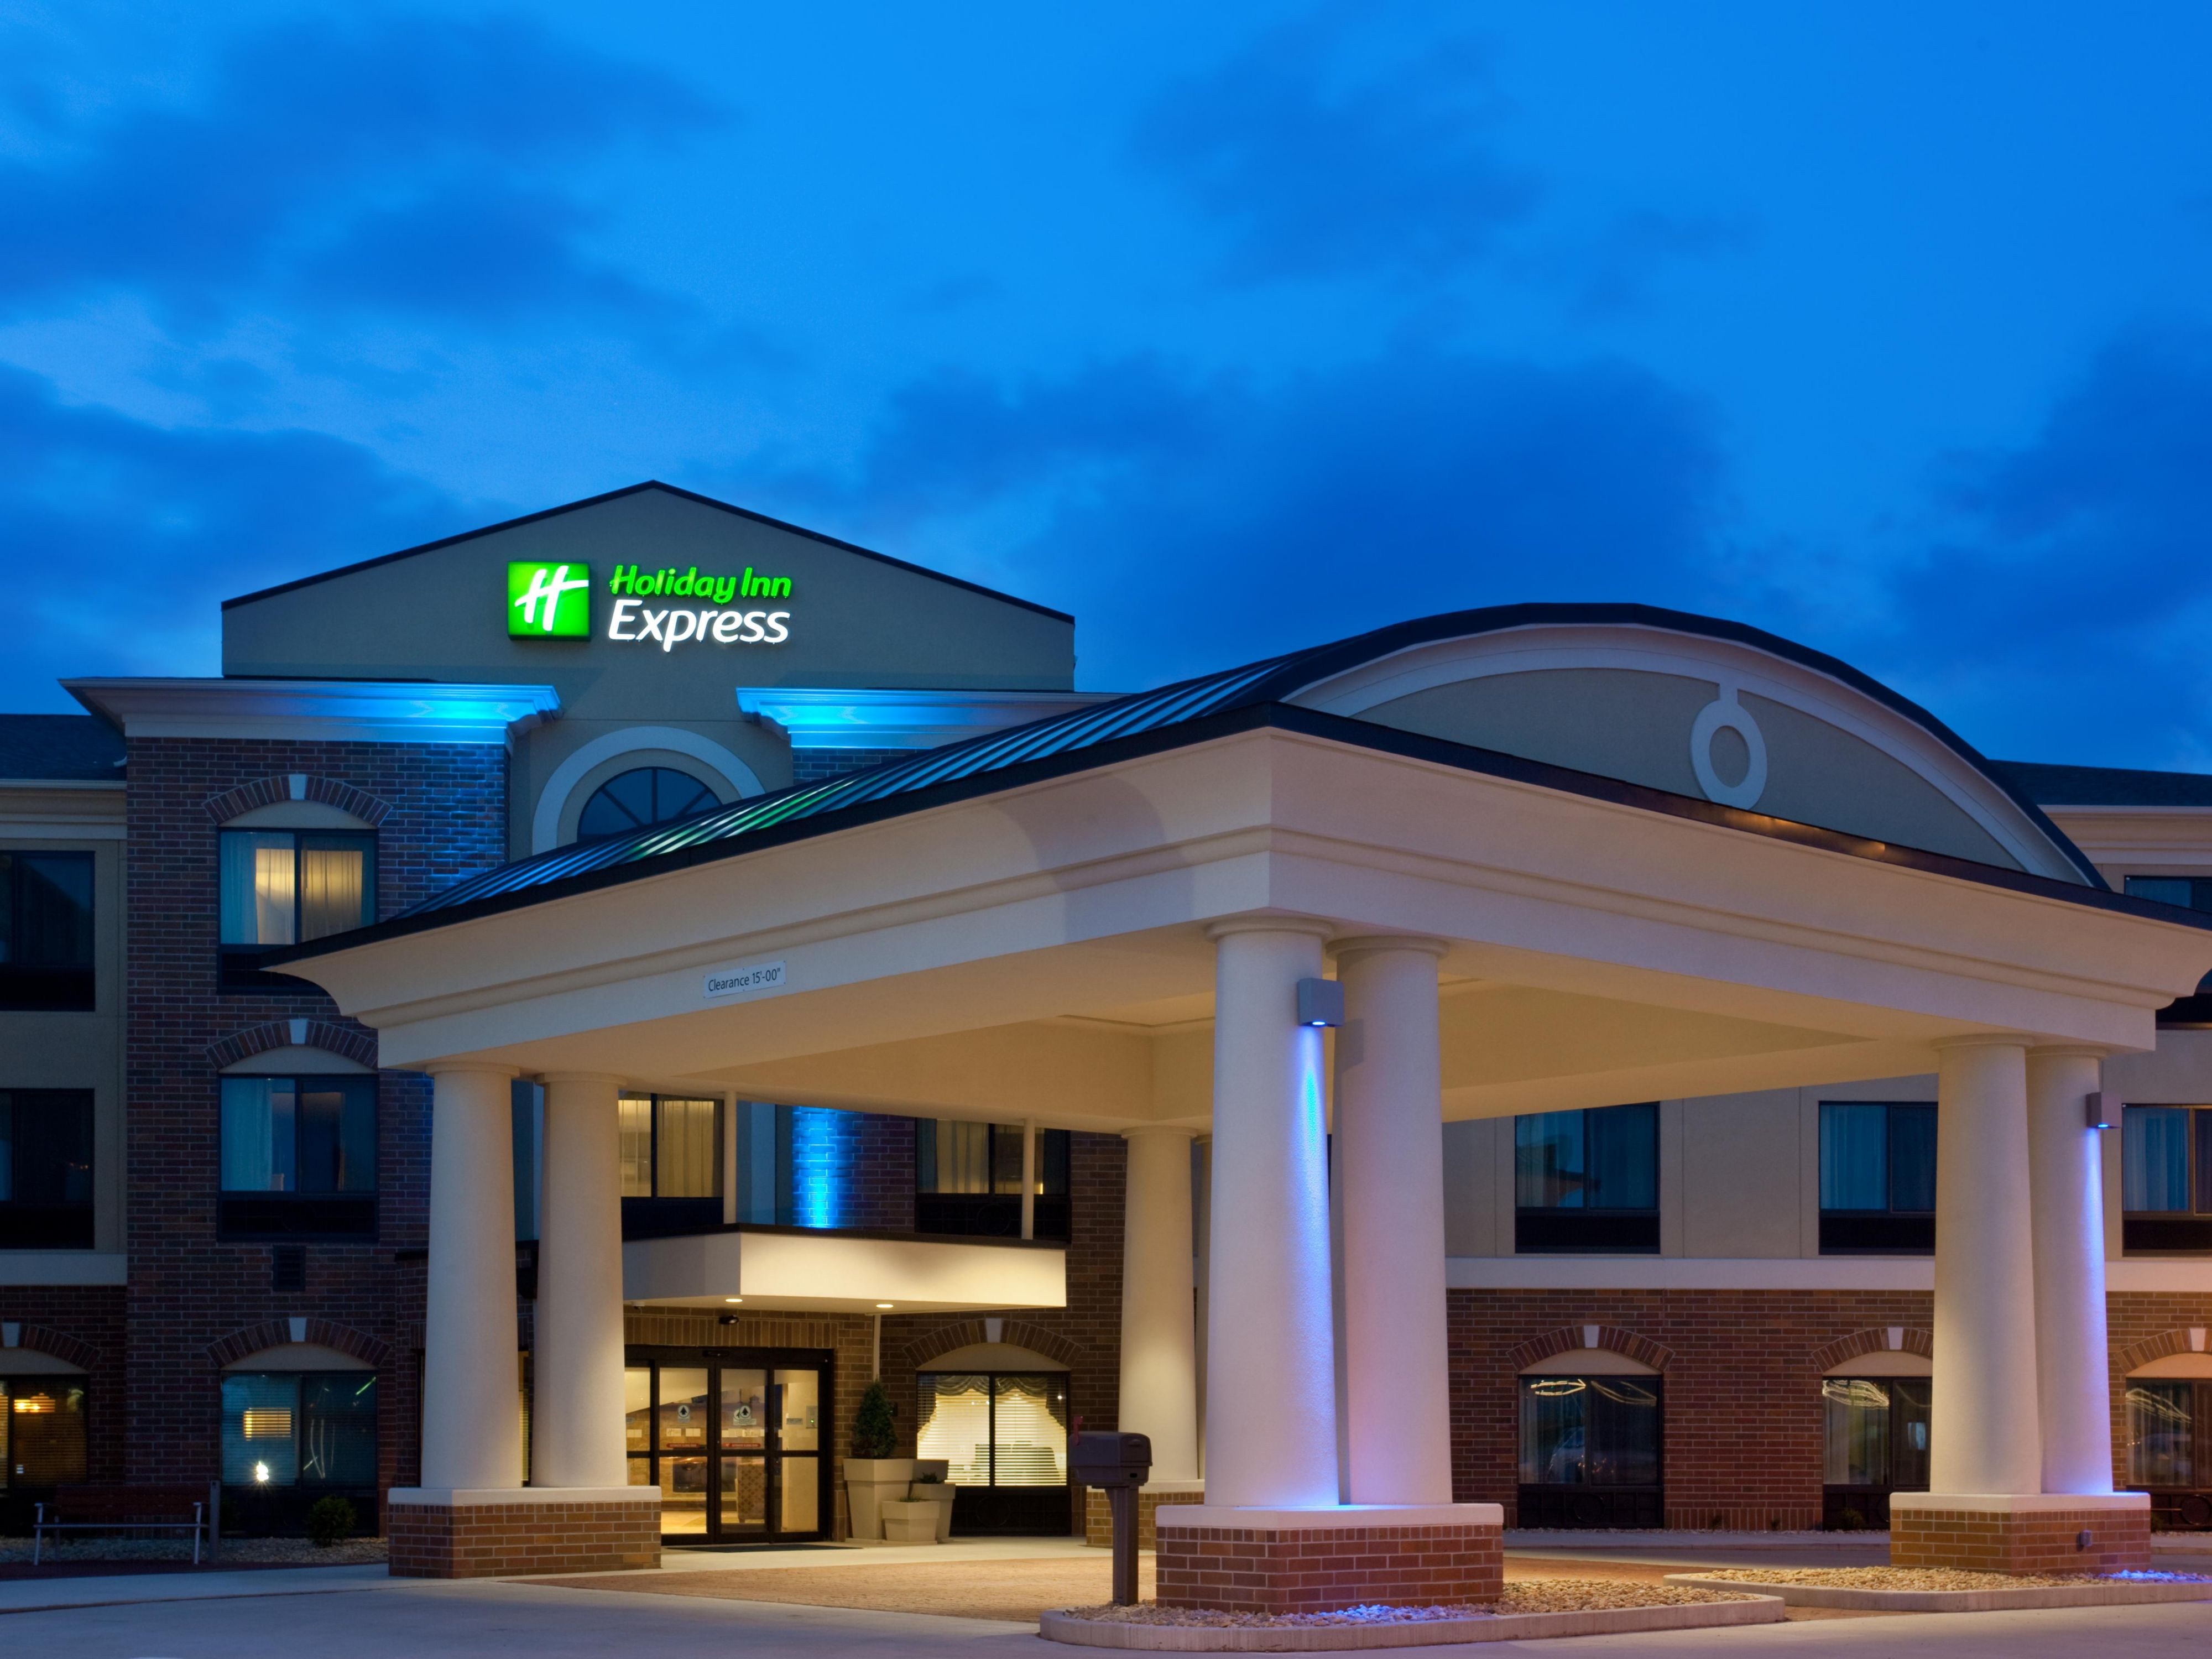 Holiday Inn Express Amp Suites Peru Lasalle Area Hotel By Ihg